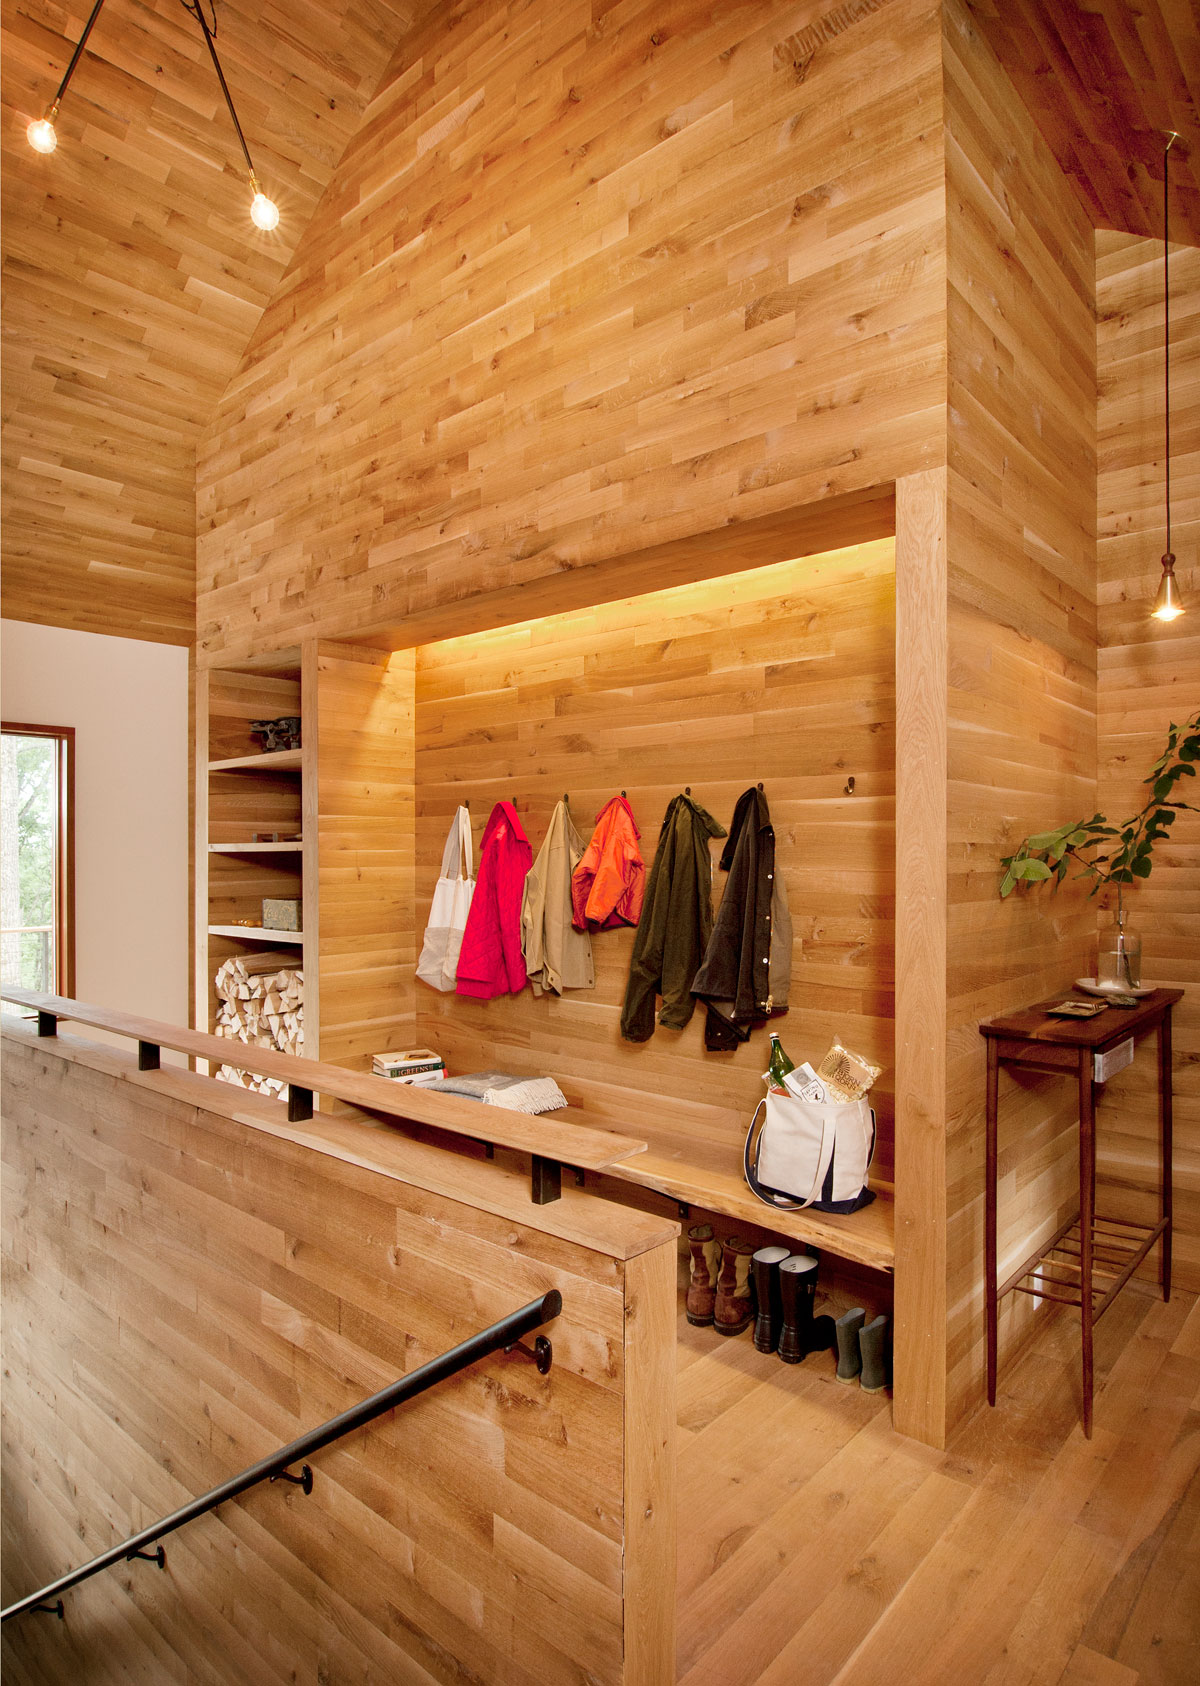 wood open wardrobe, wooden floor wall and ceiling design ideas, room decoration